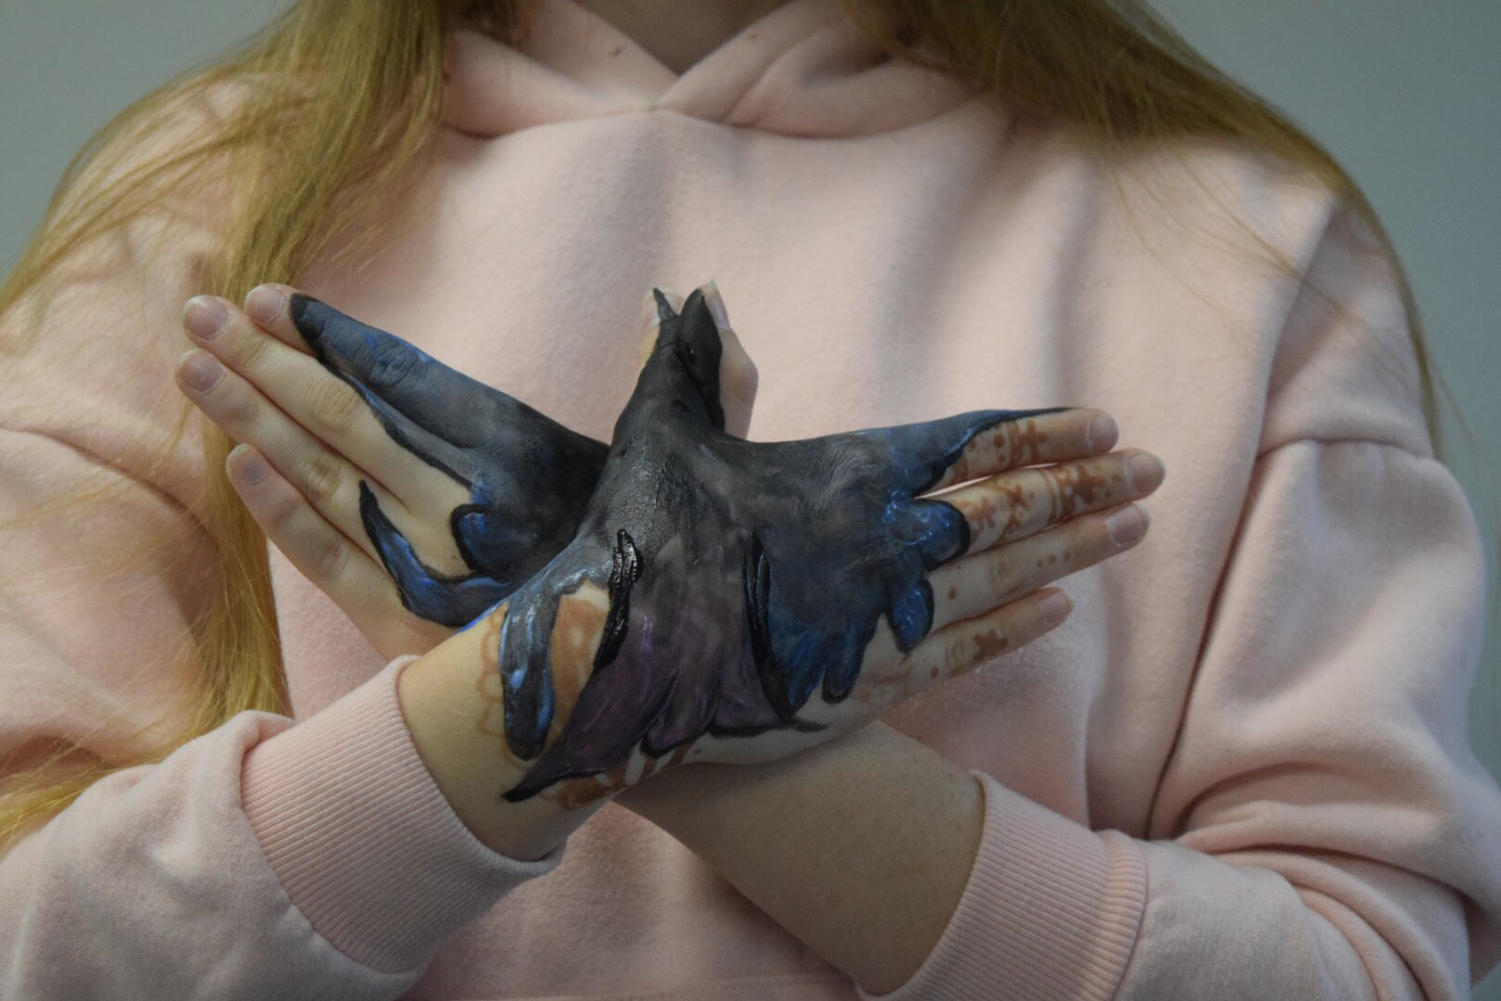 """Sophomore Ava Pfeil does a finger painting of a bird across her hands while signing the word bird in ASL. Students were required to sign an object, then paint it over their hands. """"I think it helped open my eyes and realize how hard it is for [deaf people] to communicate with others,"""" Pfeil said."""